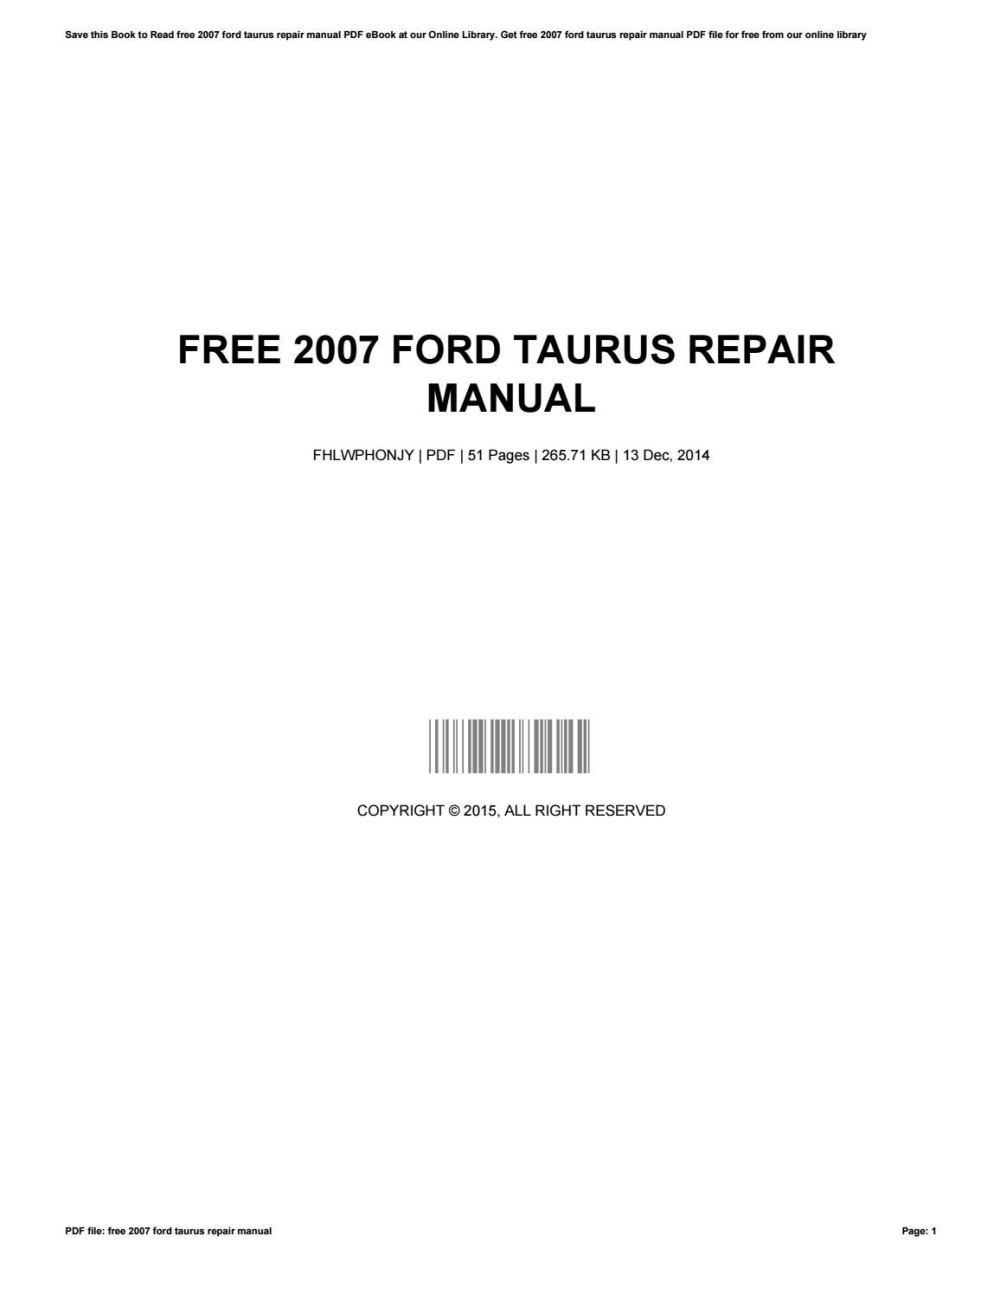 medium resolution of ford tauru ignition wiring diagram